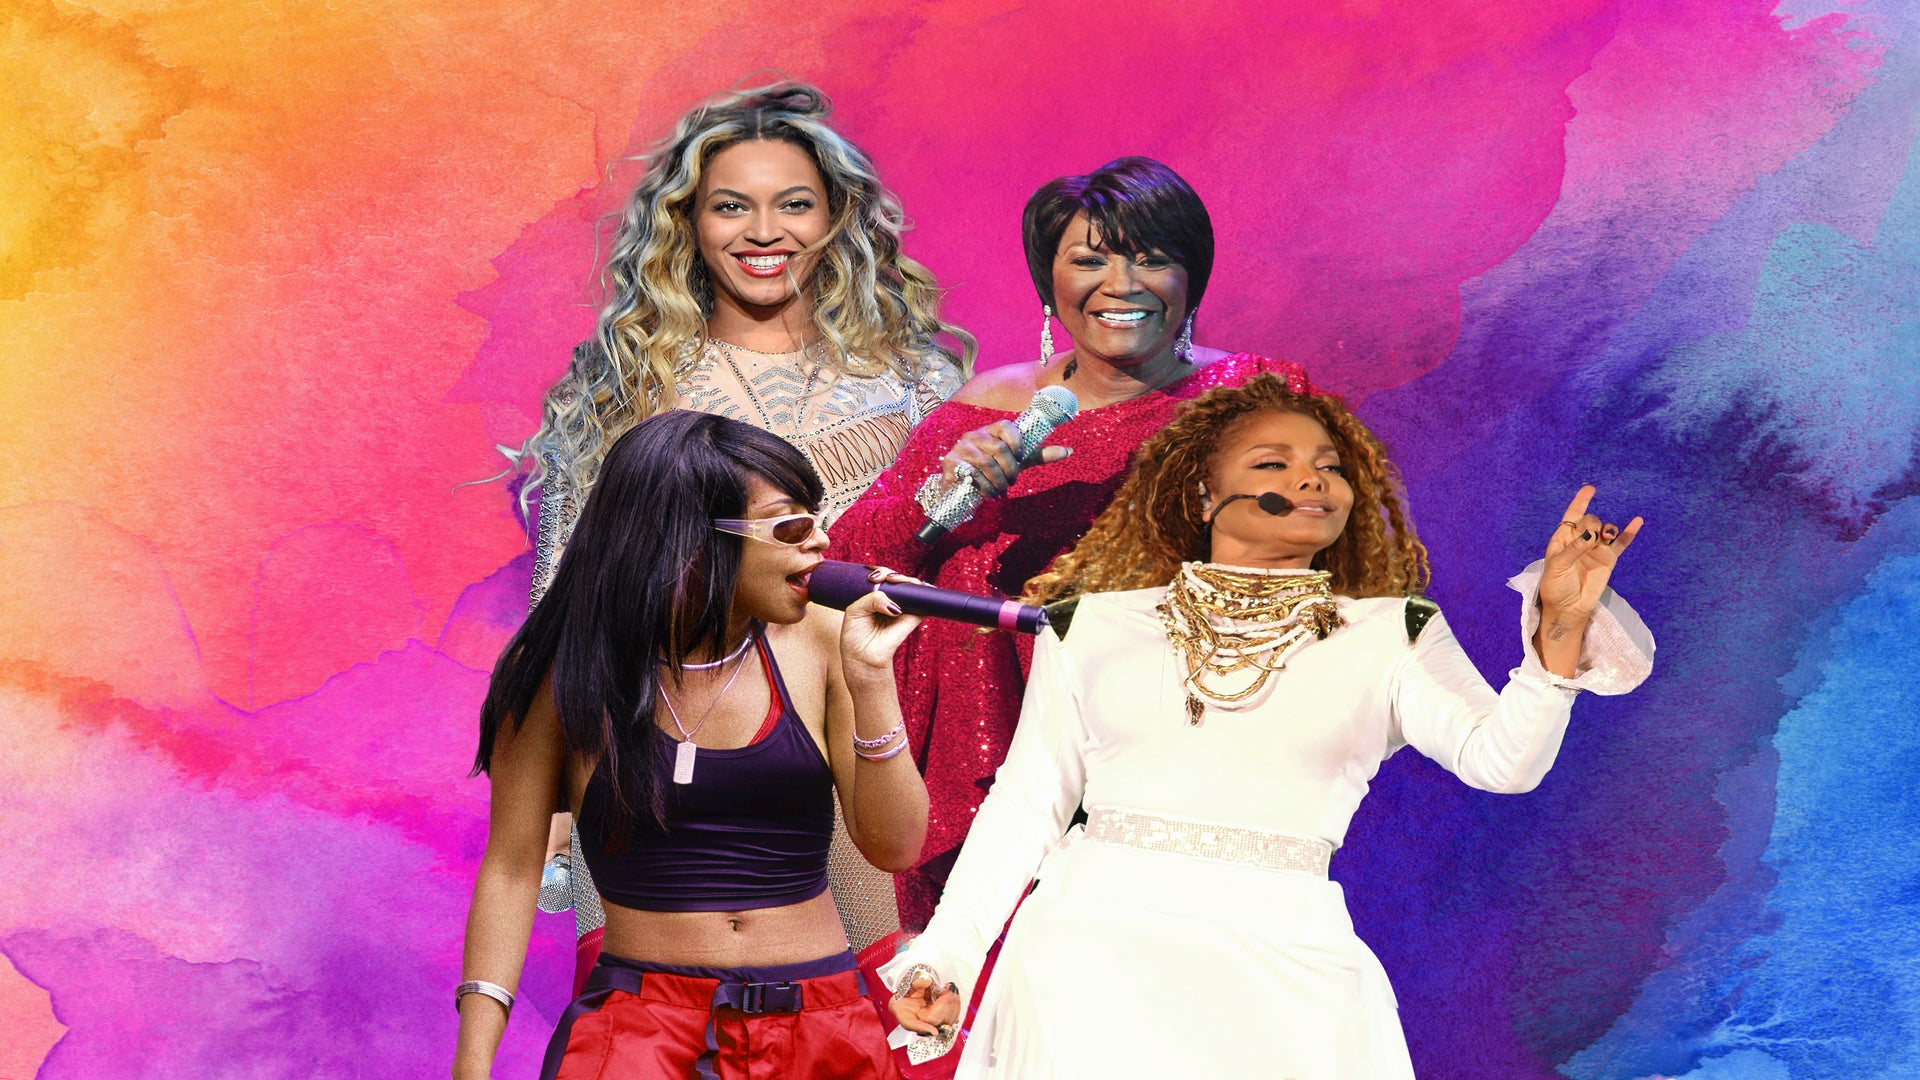 Black Girl Karaoke: 51 Songs That Shaped Our Journey To Womanhood